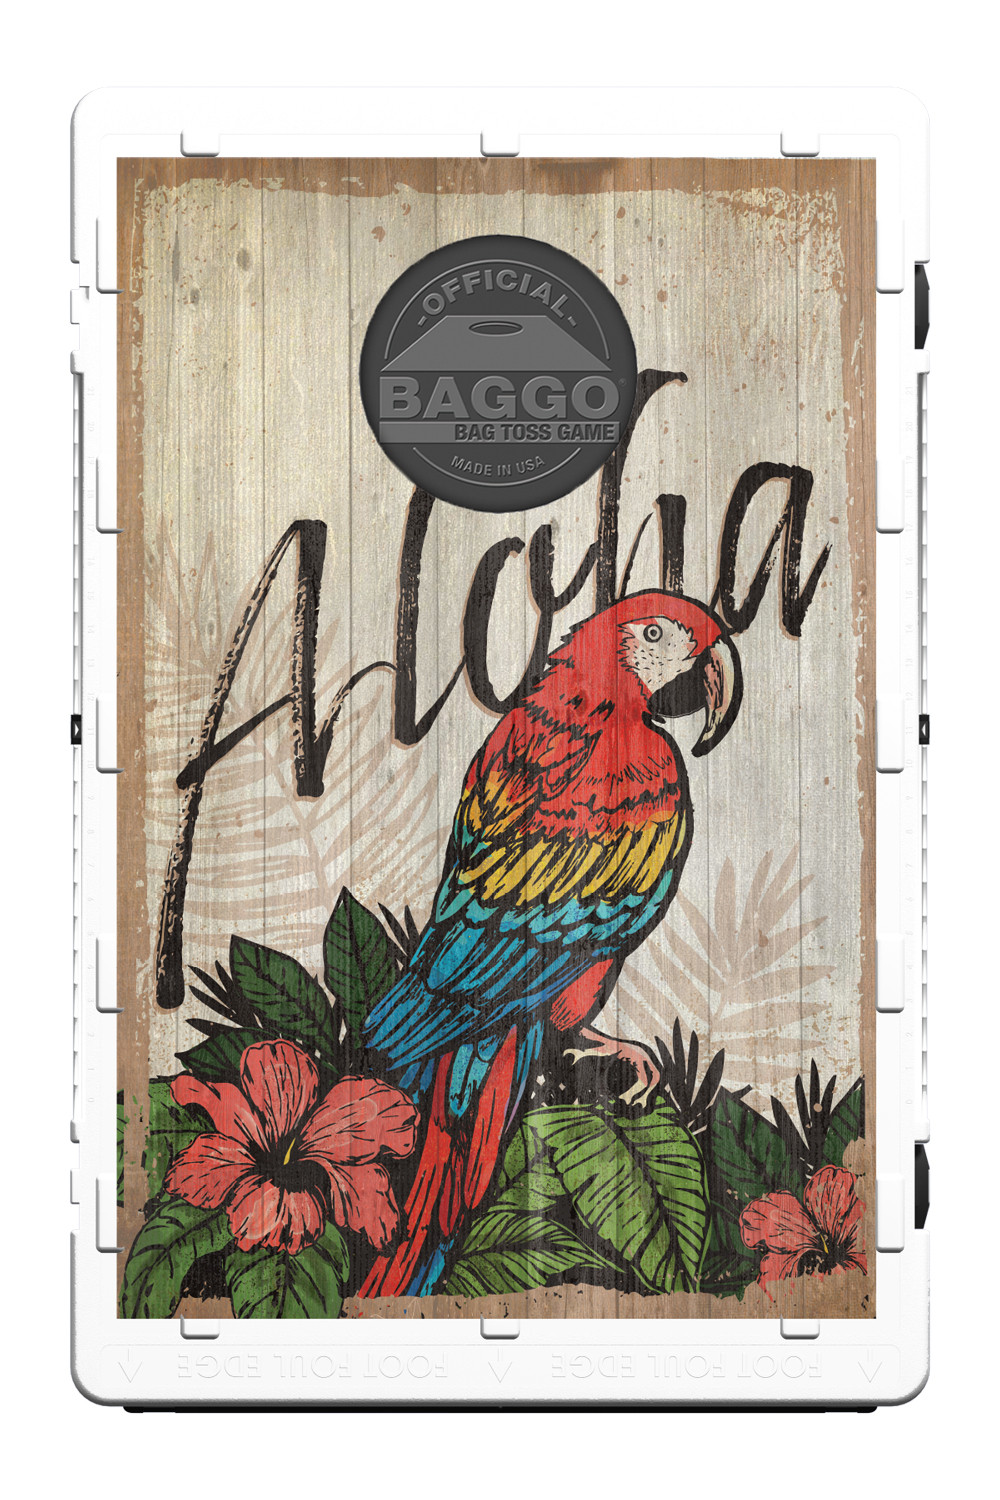 Aloha Wood Texture Screens (only) by Baggo